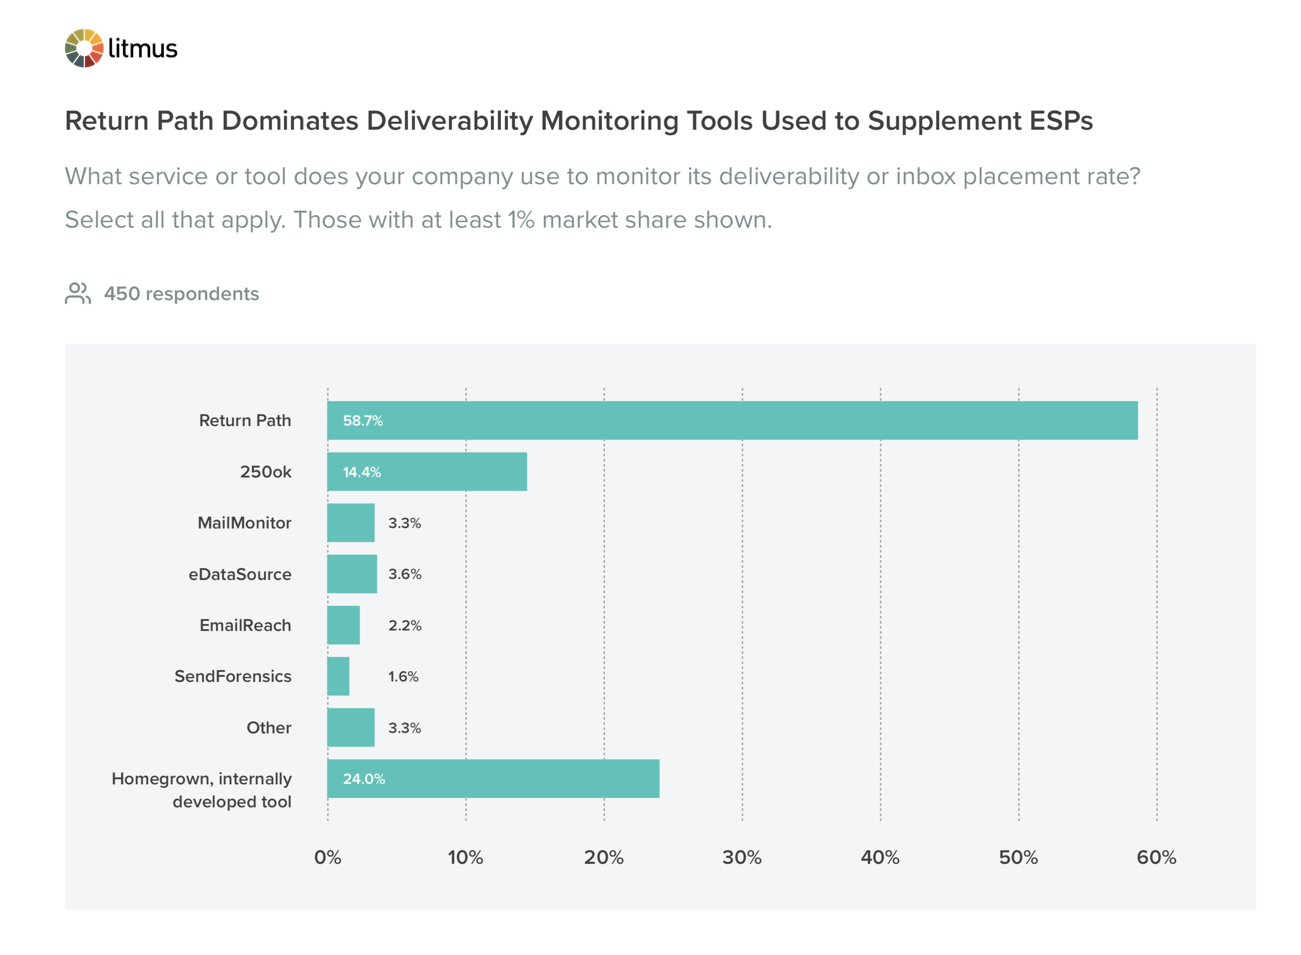 Return Path Dominates Deliverability Monitoring Tools Used to Supplement ESPs